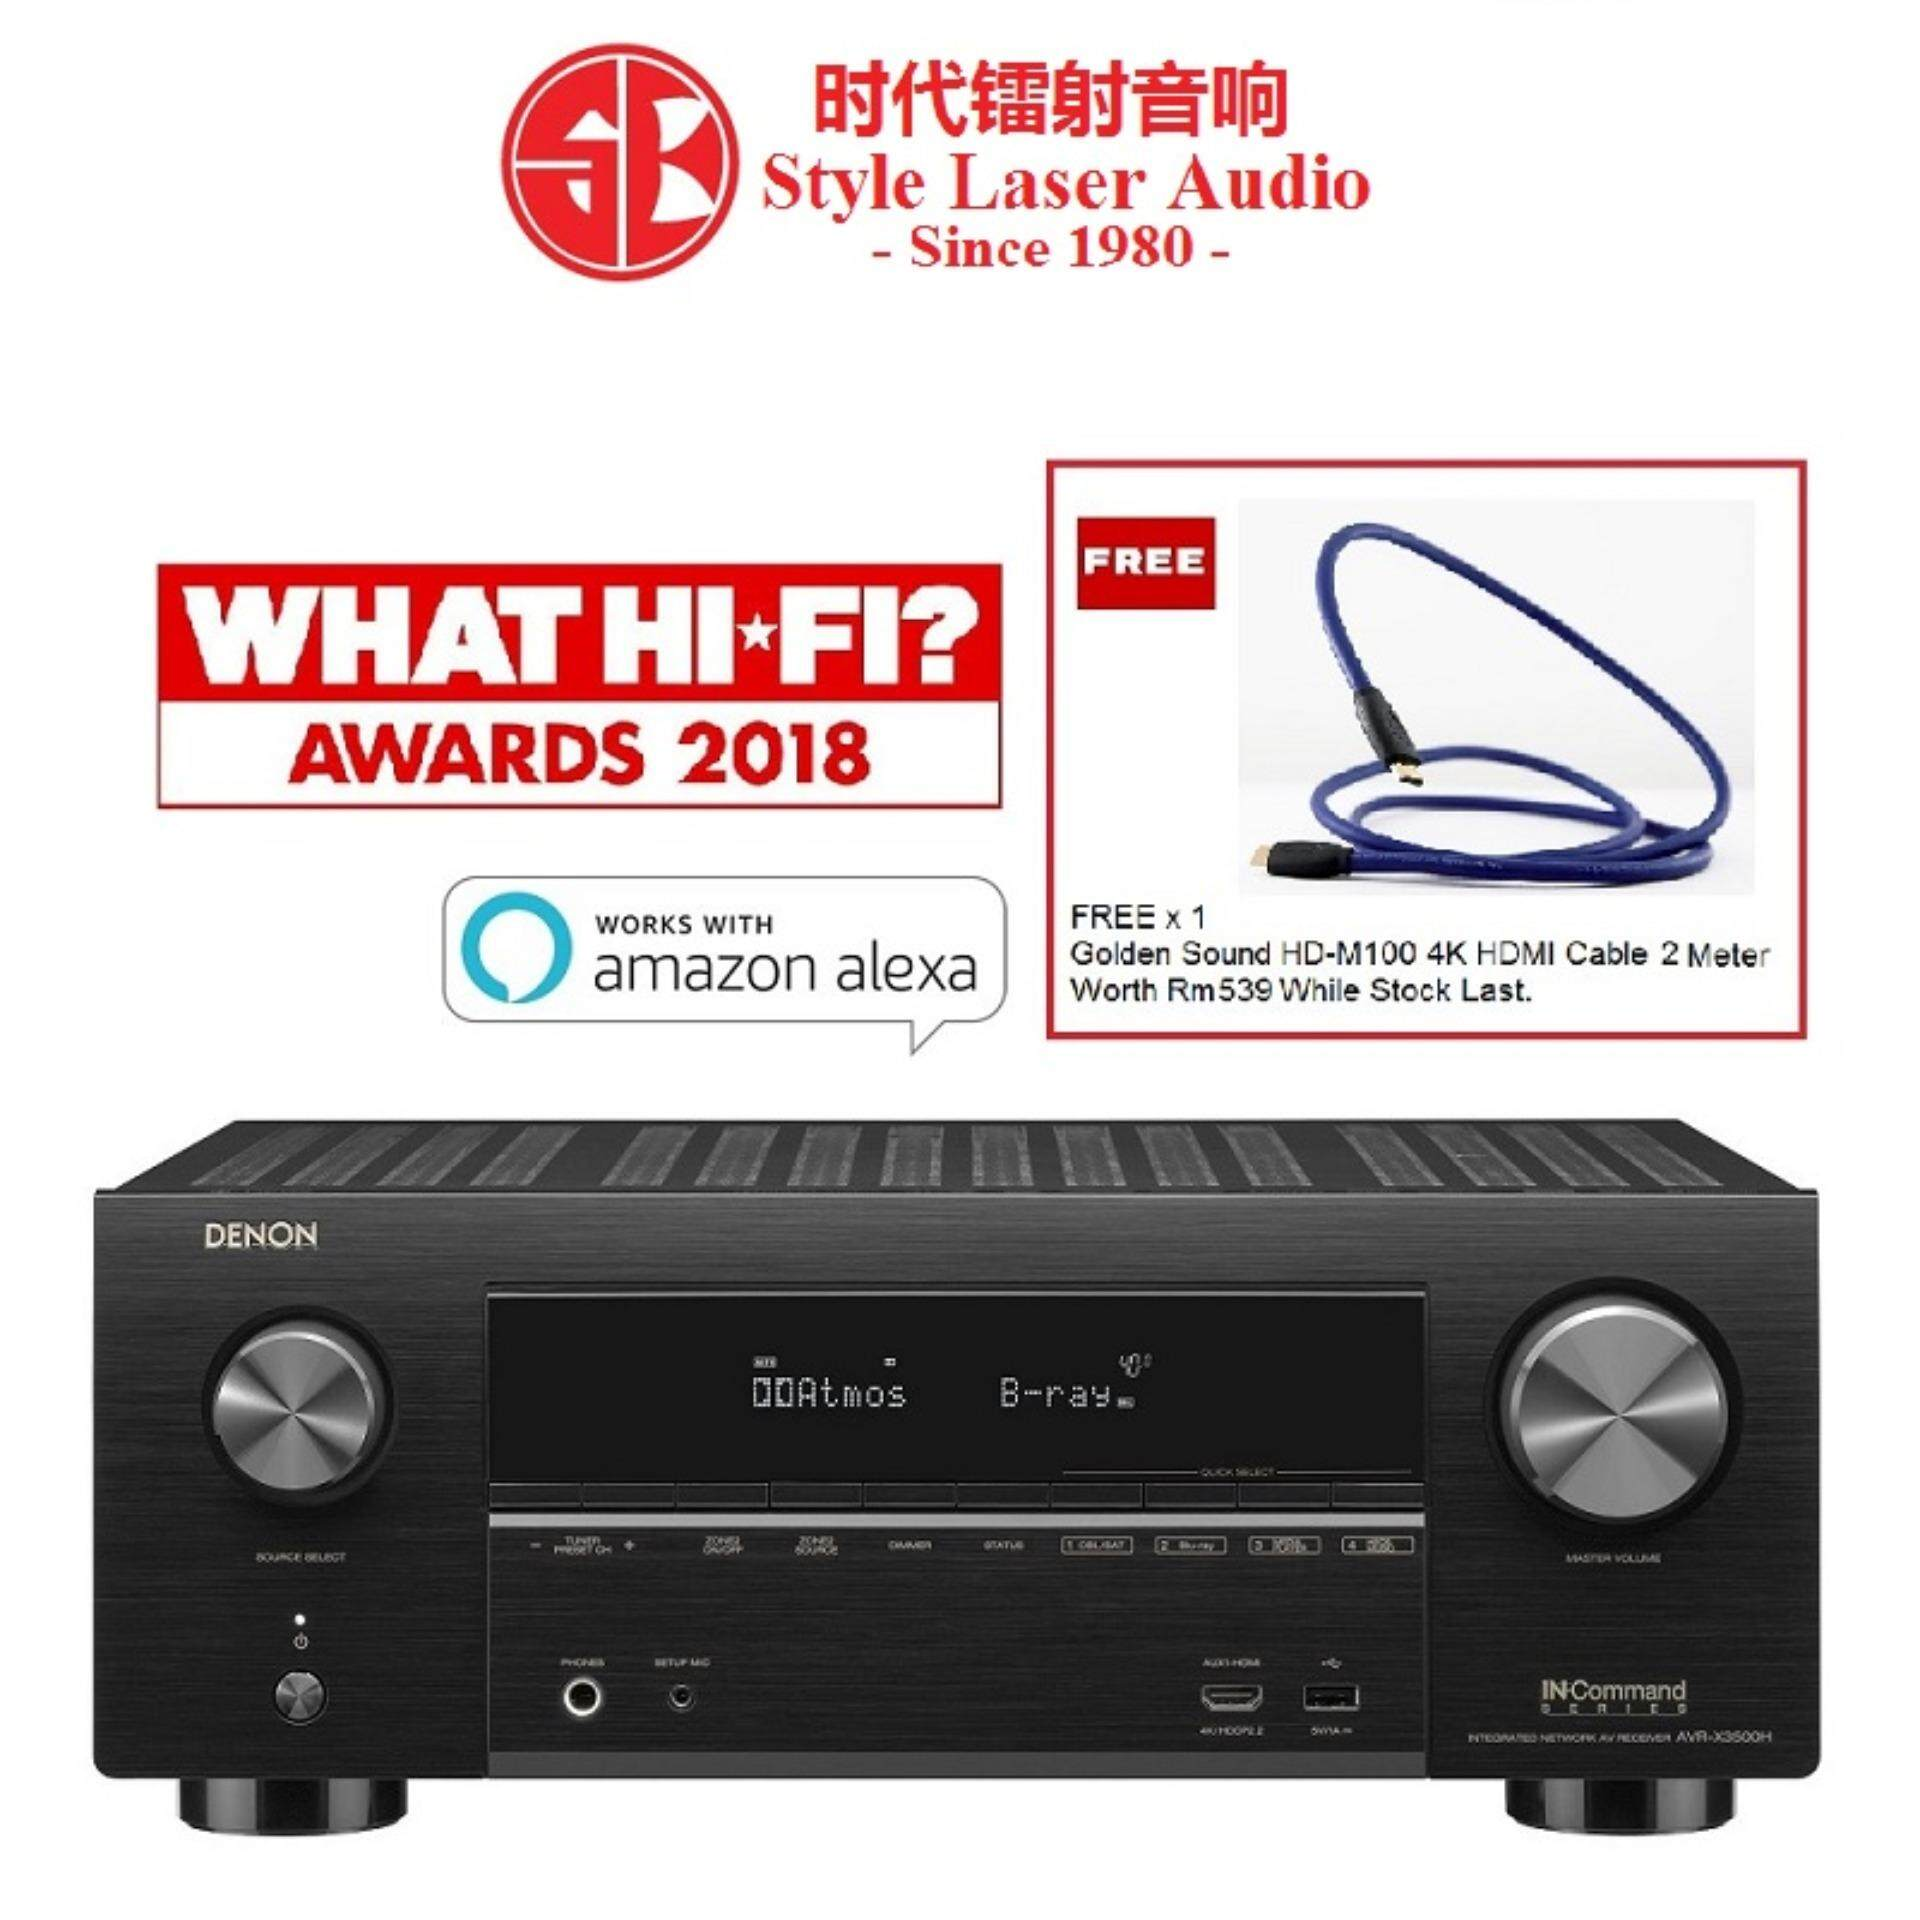 Denon Products for the Best Price in Malaysia